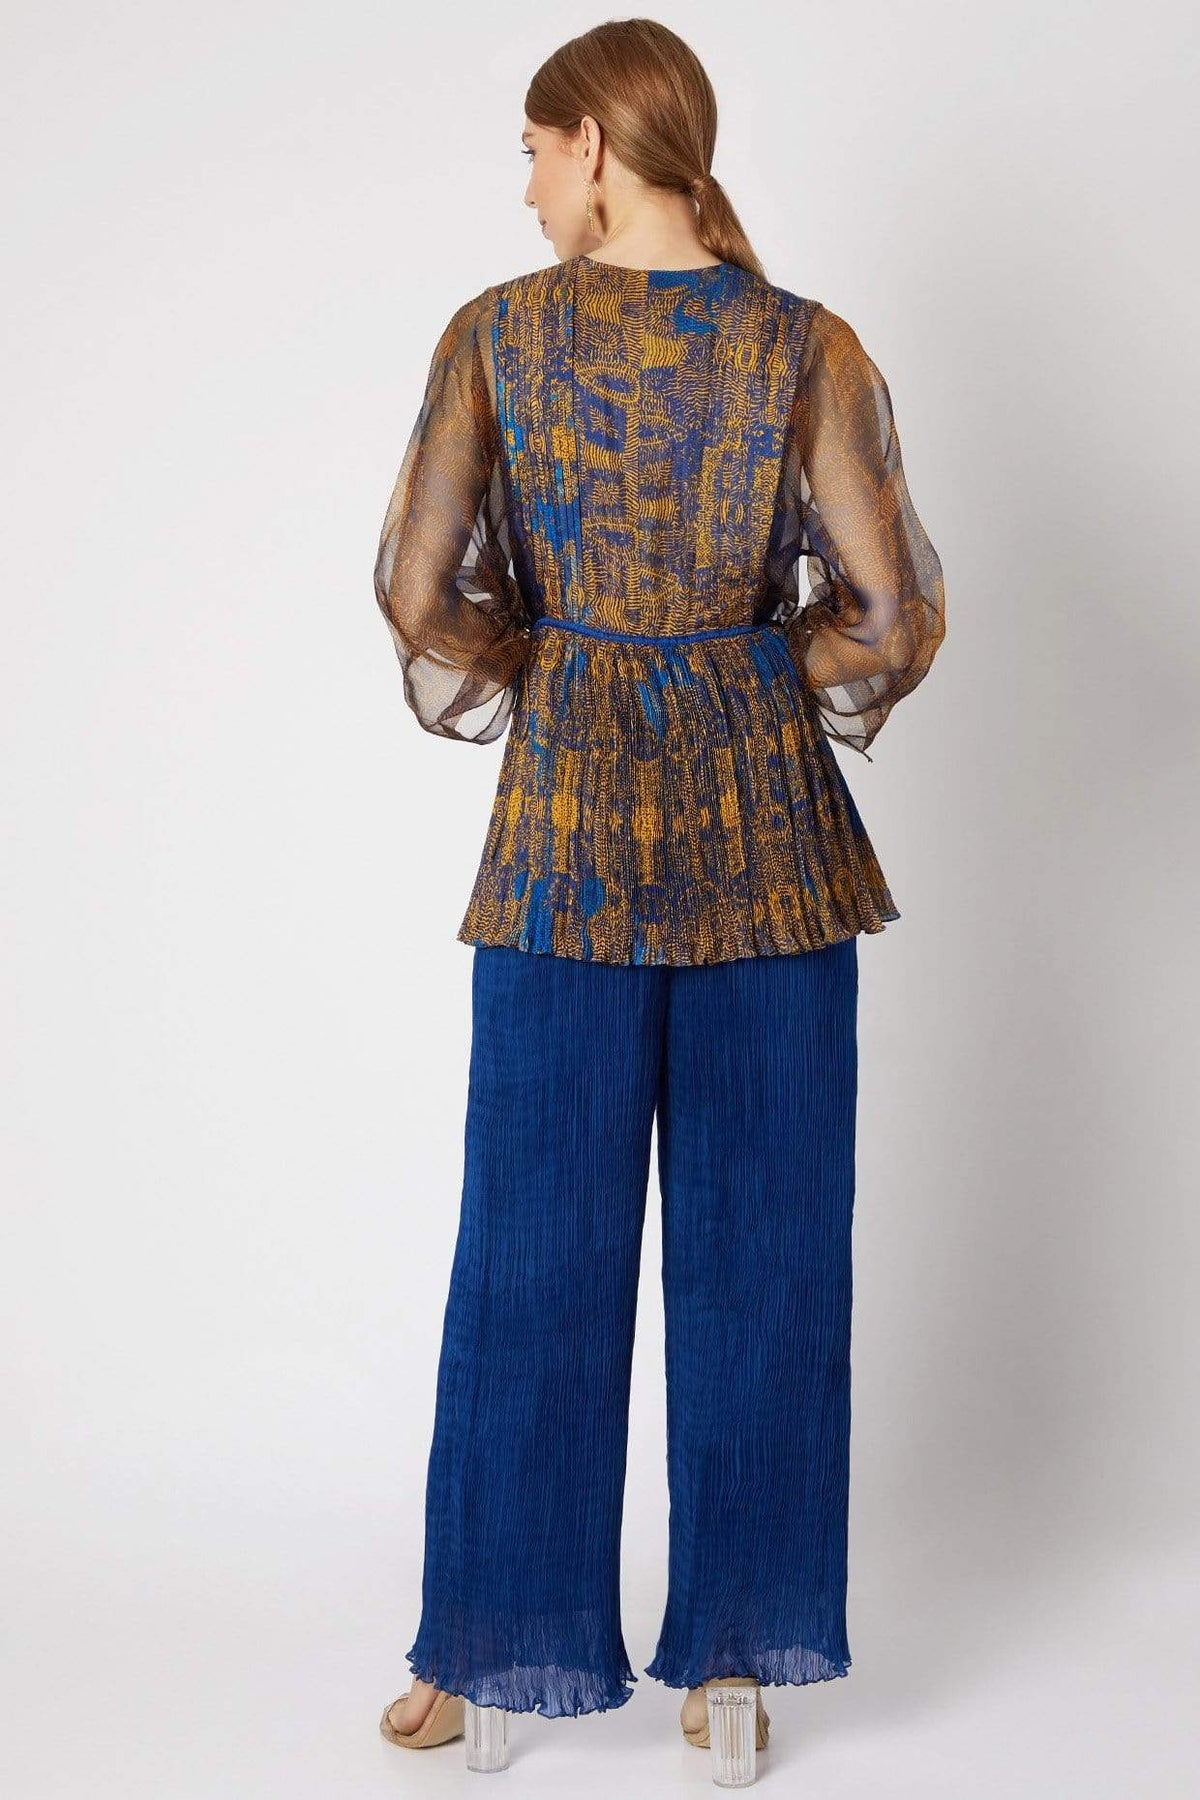 Saaksha & Kinni Shirts & Tops Blue top with abstract print